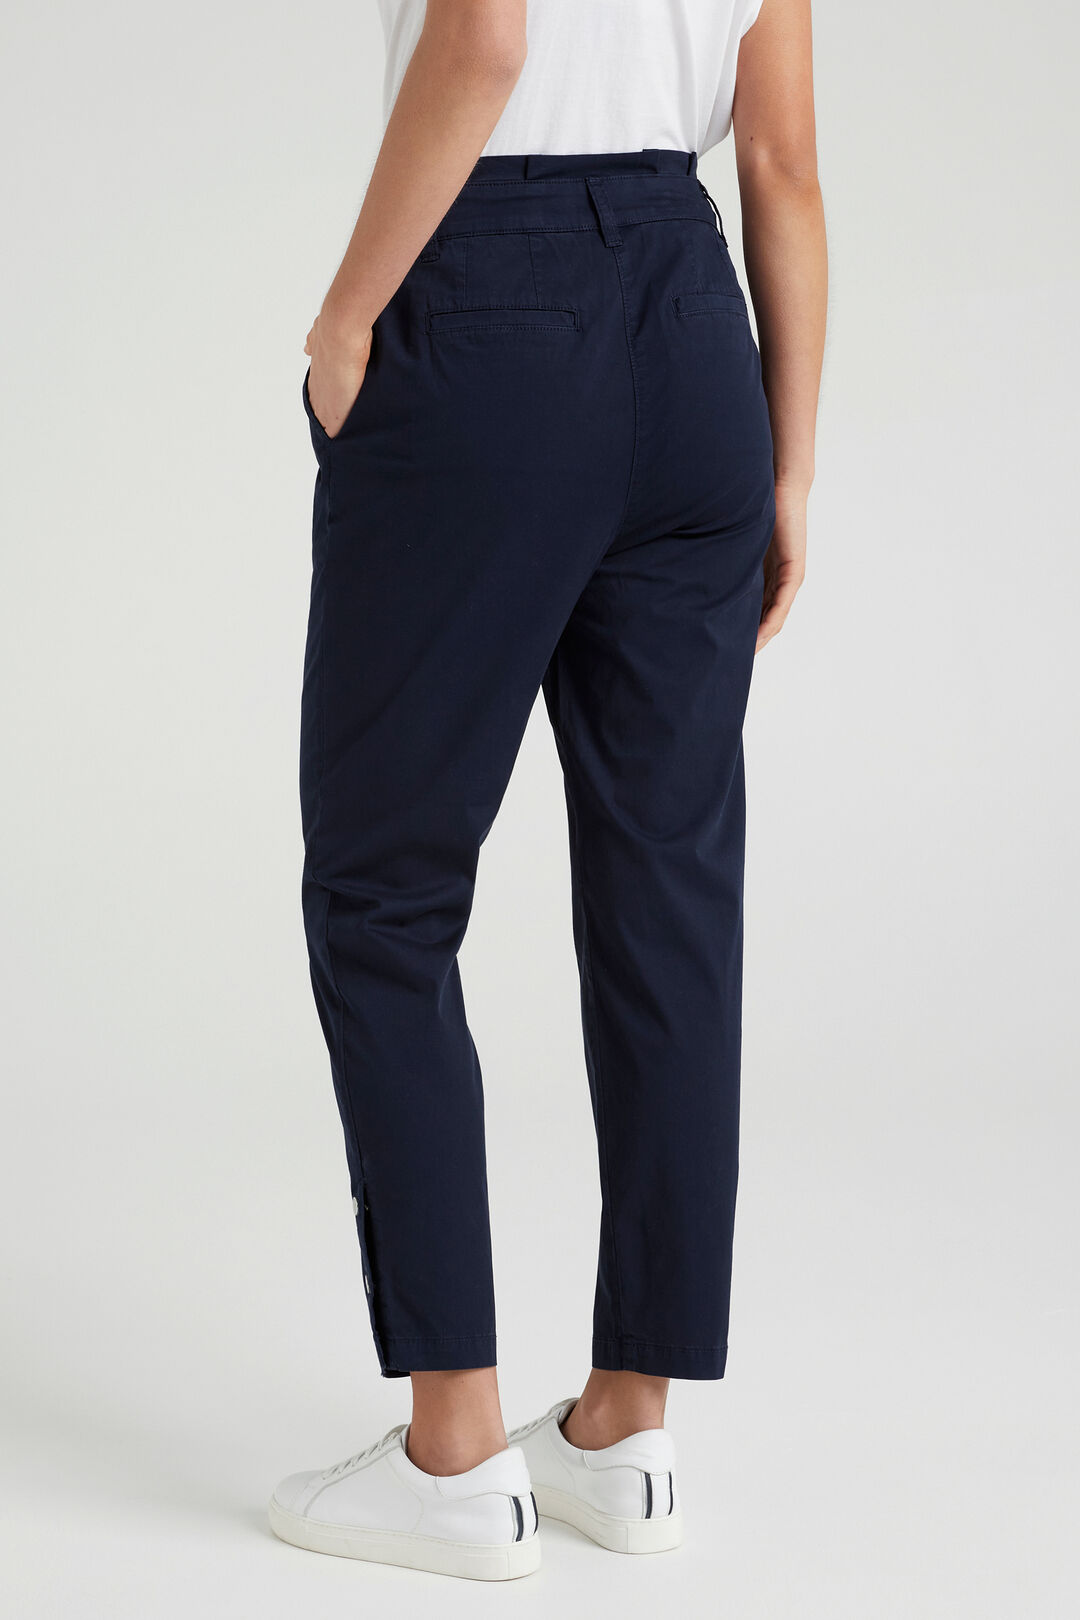 HIGH WAIST TAPERED PANT  FRENCH NAVY  hi-res